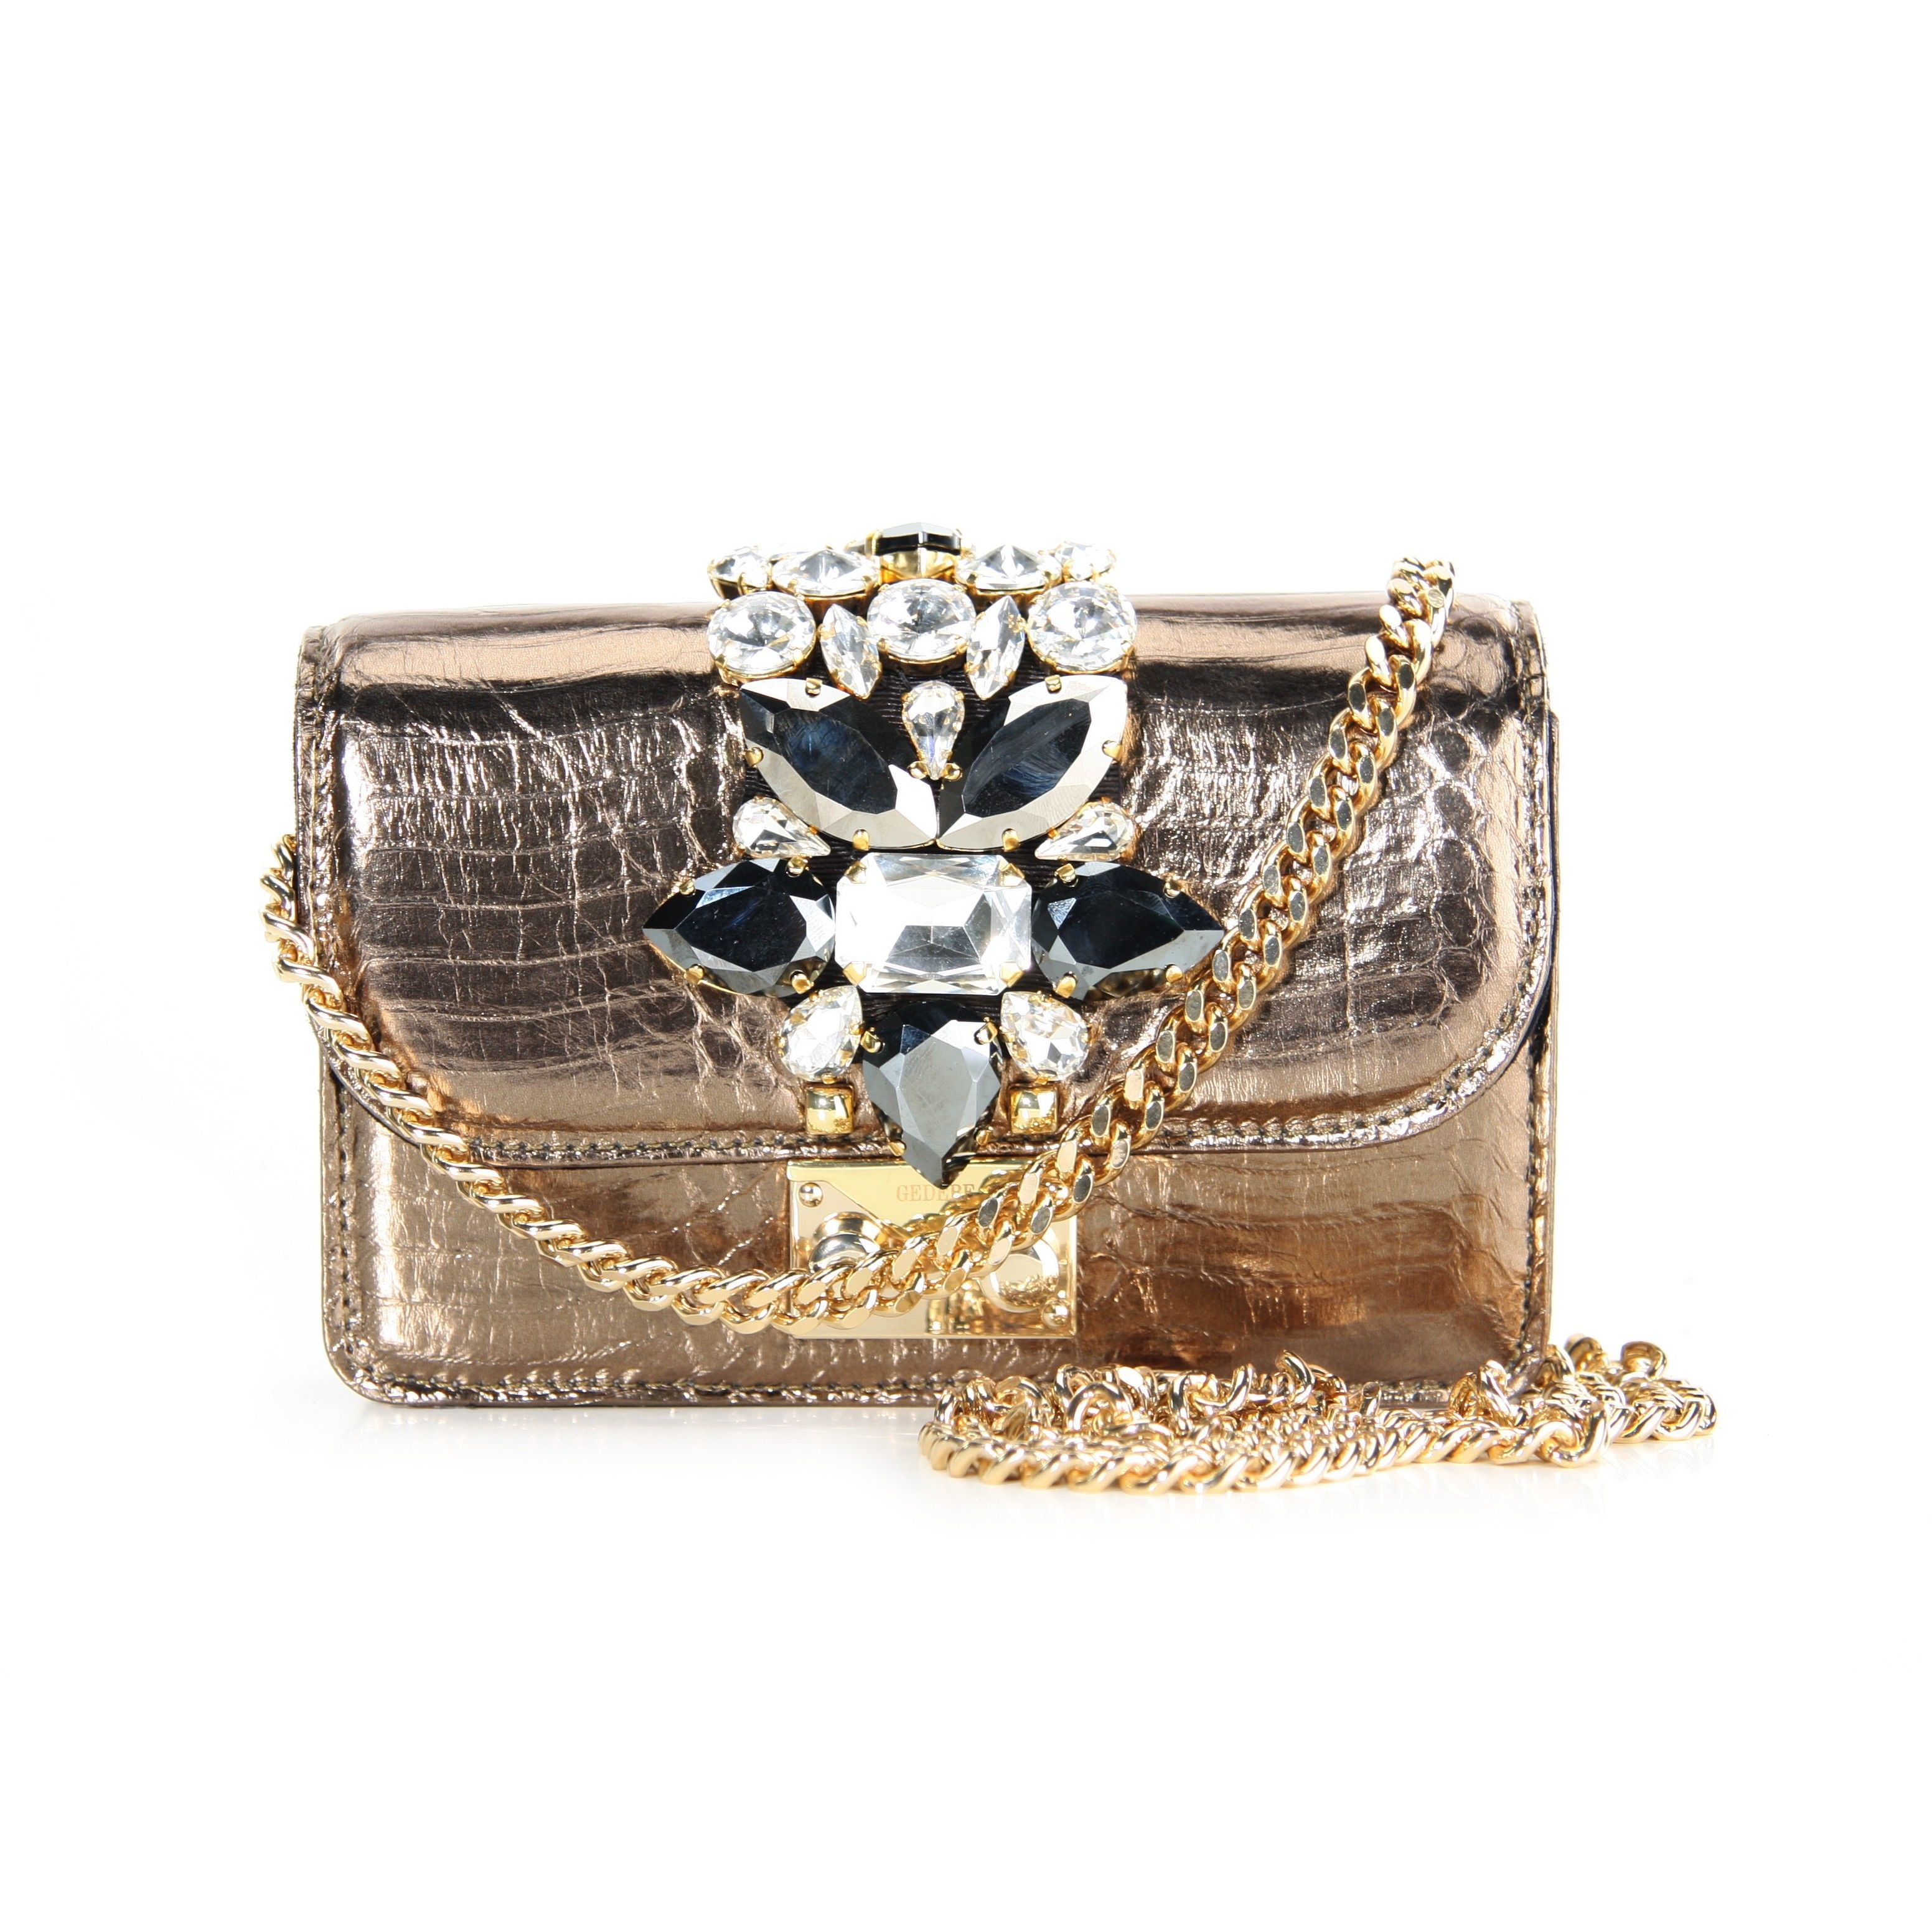 Gedebe Gold Mini Cliky Metal Textured Bag